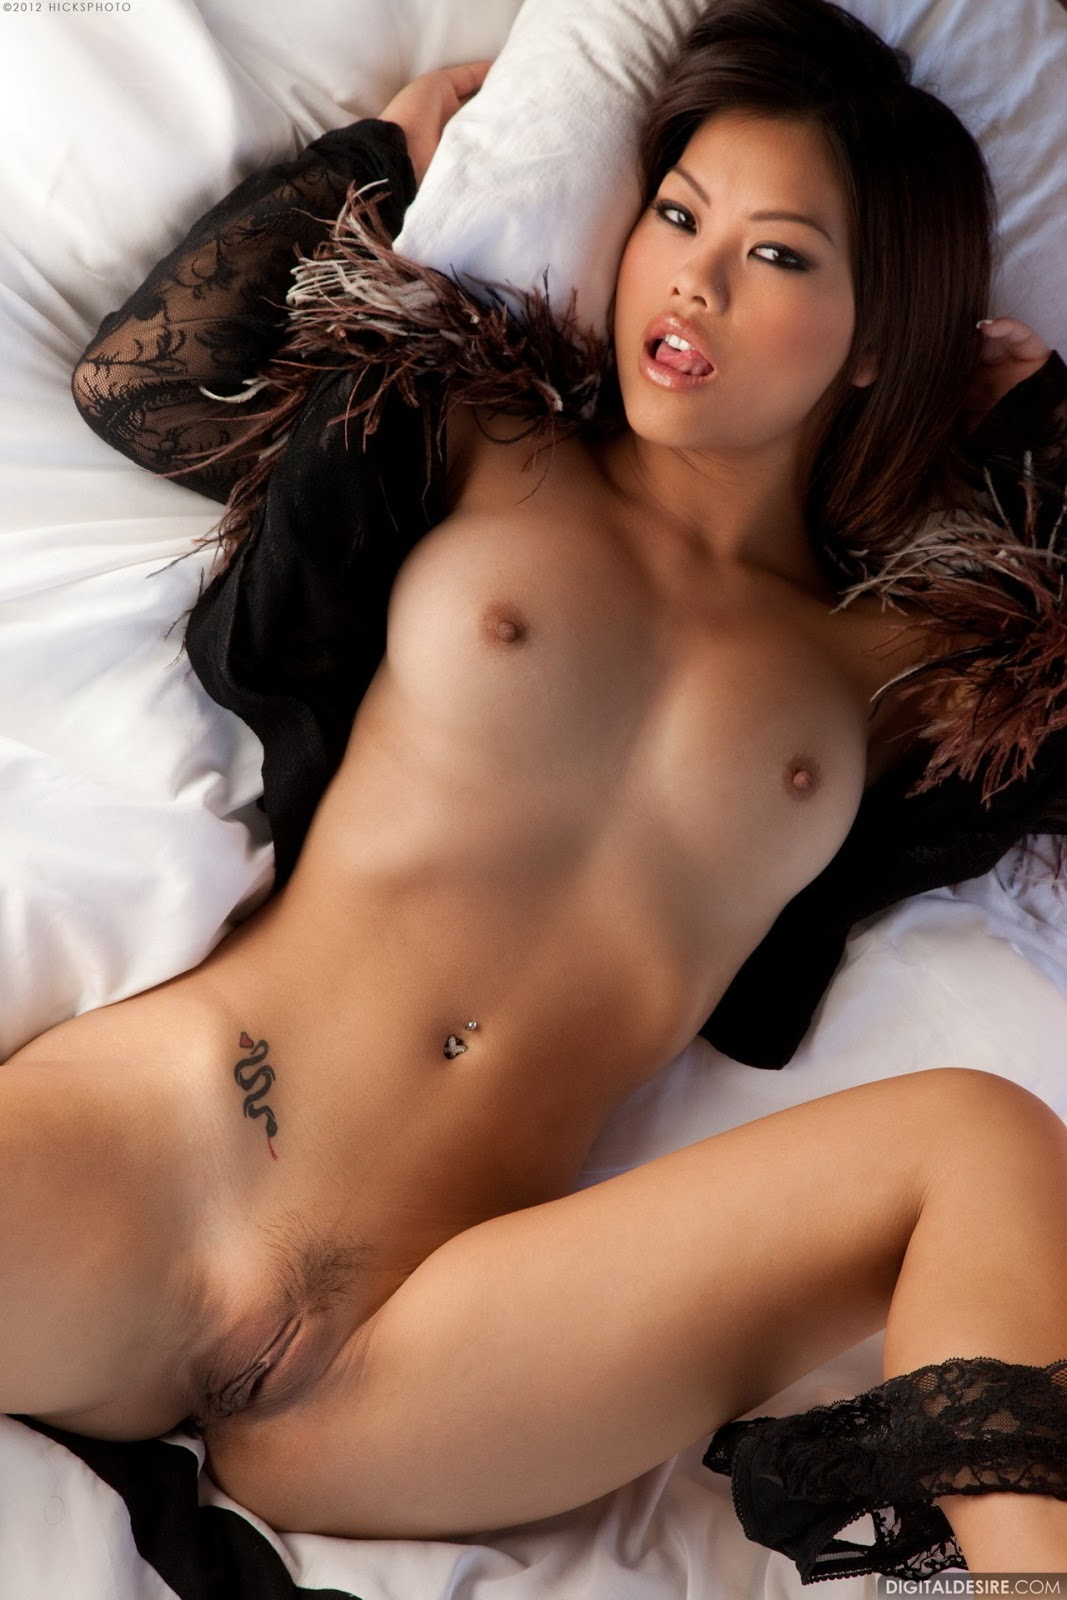 Asian Sex 4 You Asian Nude Photo Collection-8372